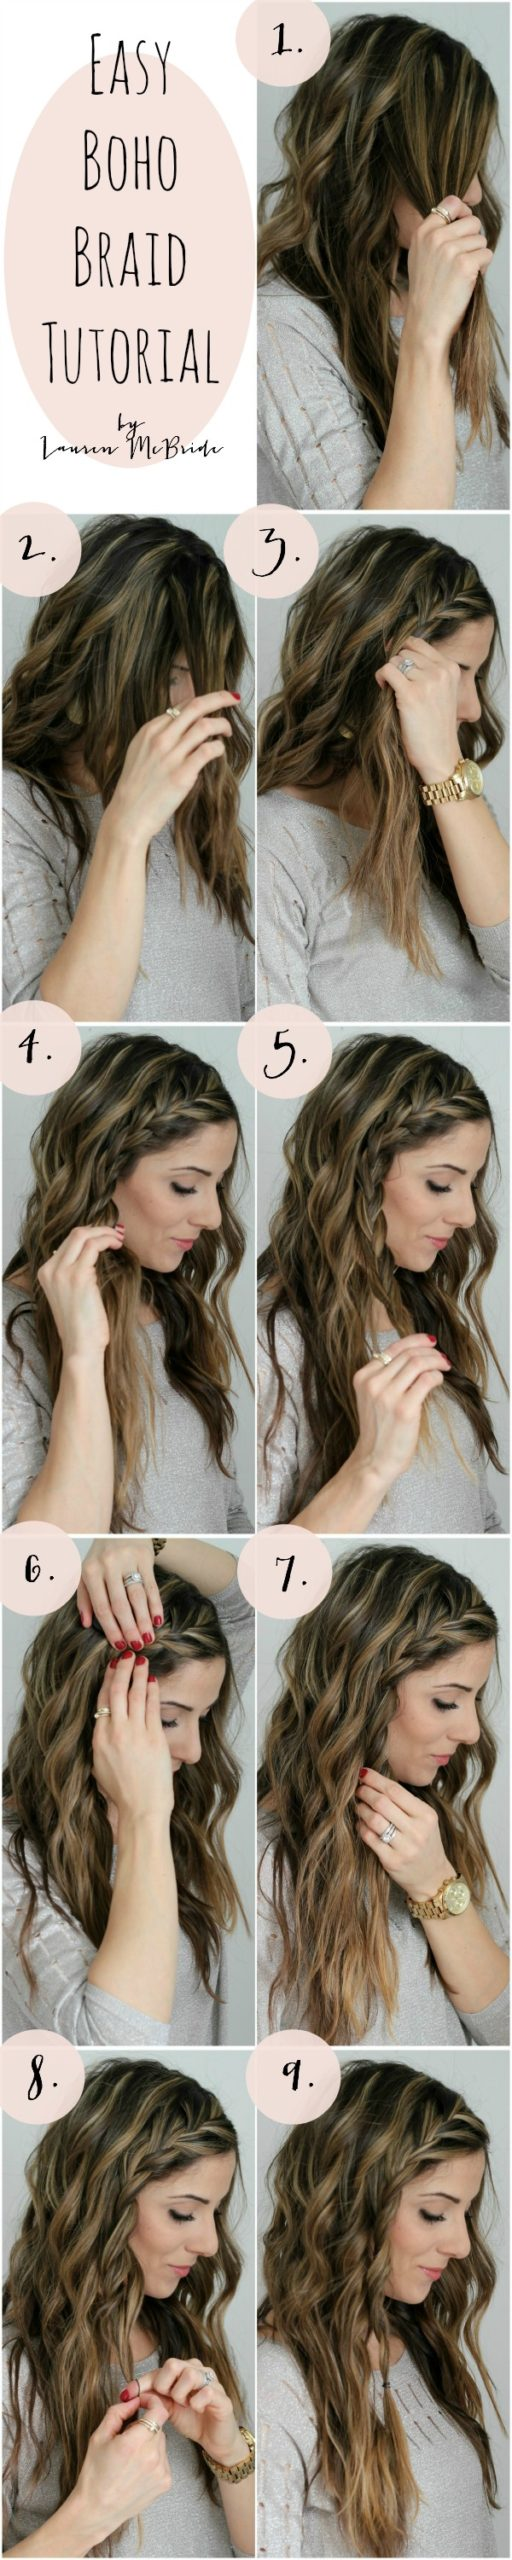 Easy-Boho-Braid-Hairstyles